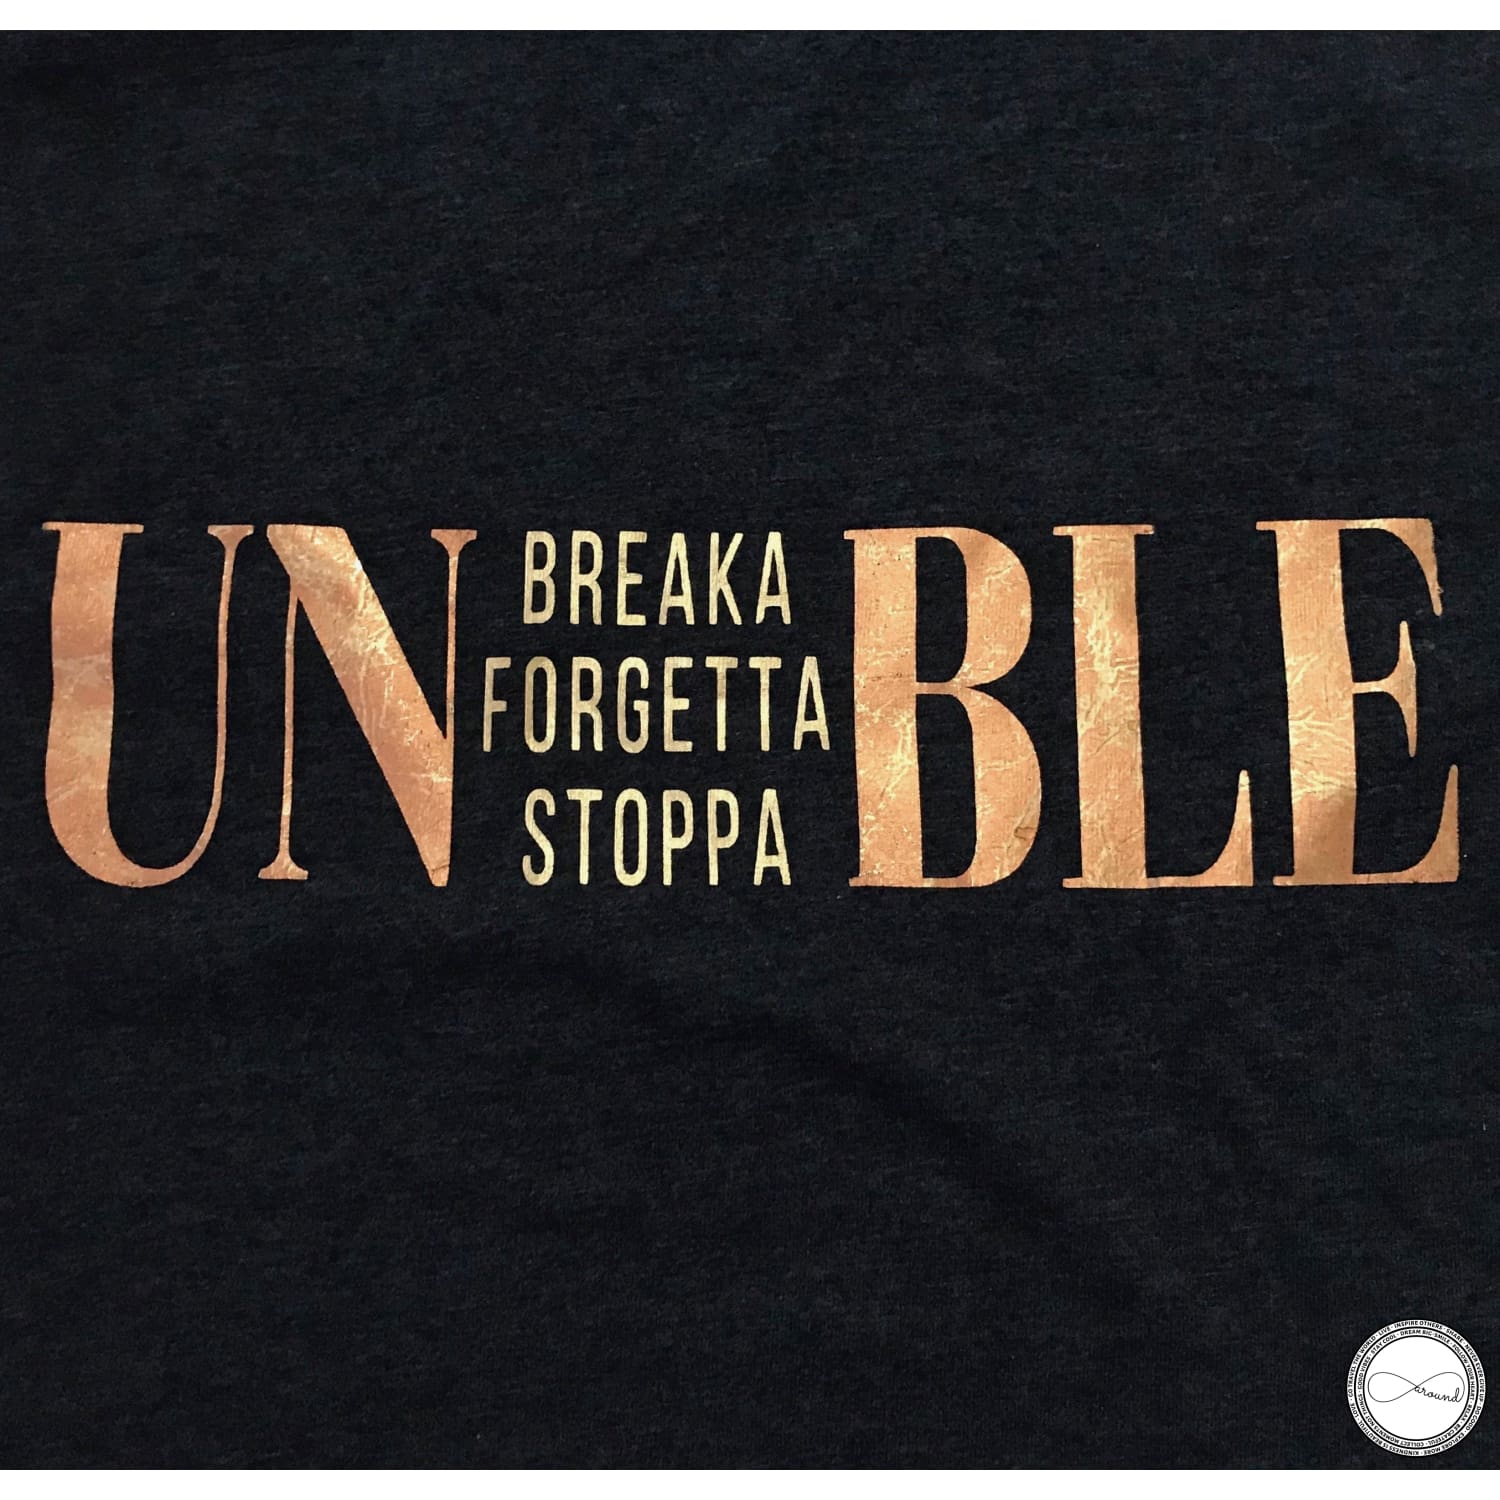 Custom made Around Eco fair trade and ecofriendly dark gray graphic tee with the words Unbreakable Unforgettable Unstoppable tshirt